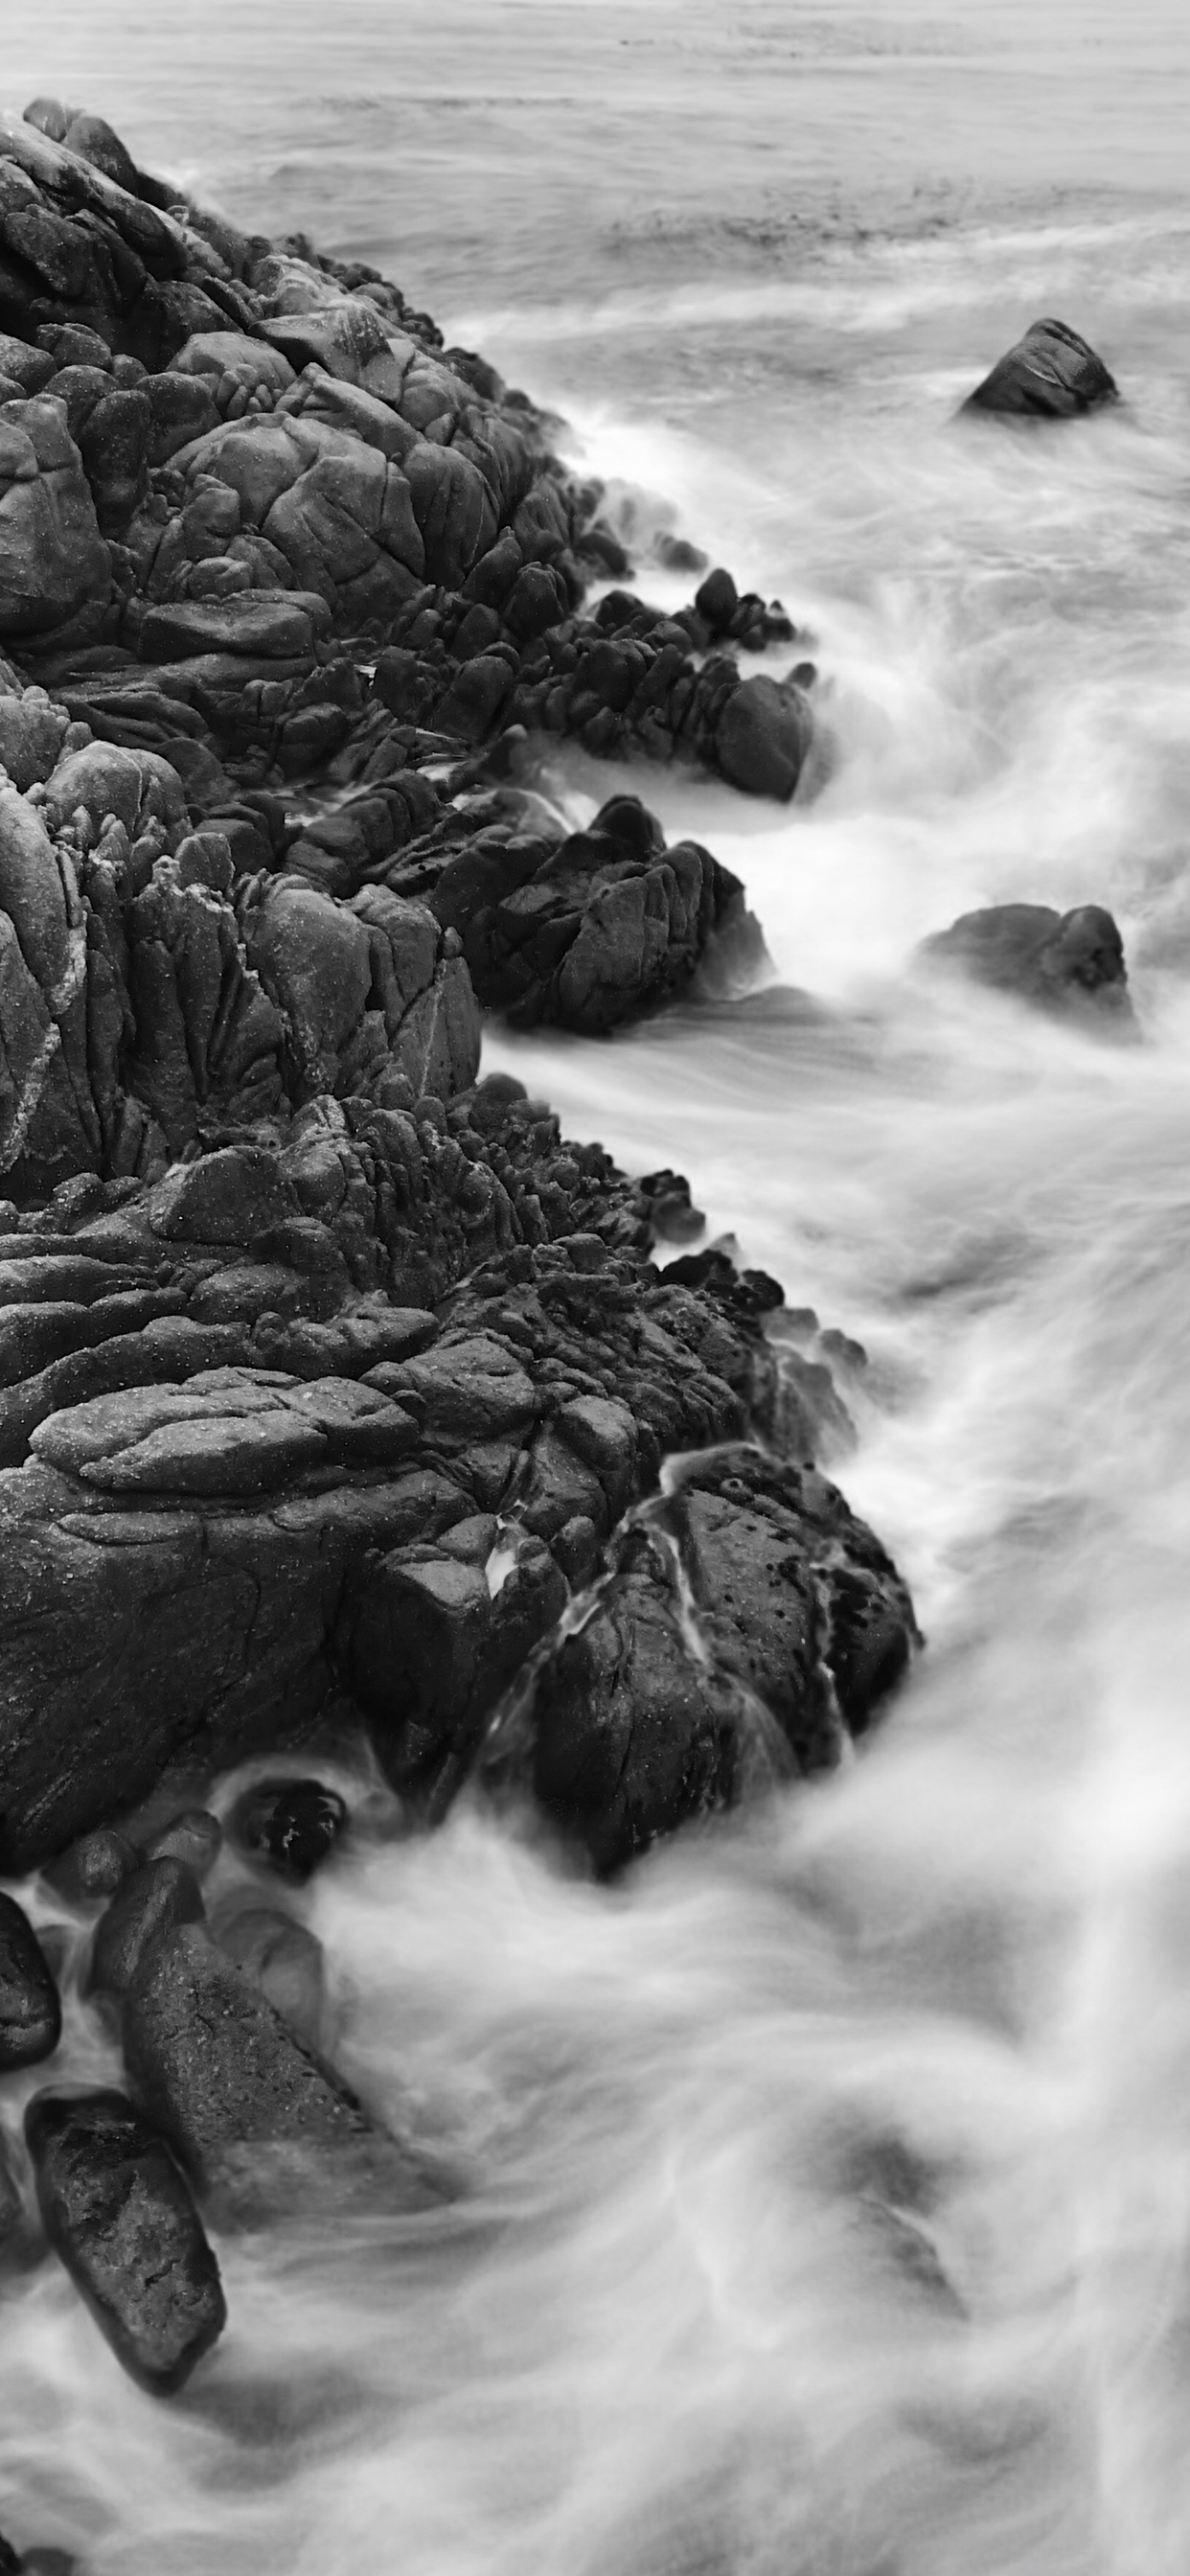 Long Exposure Motion And Water Wallpaper For Iphone Hd